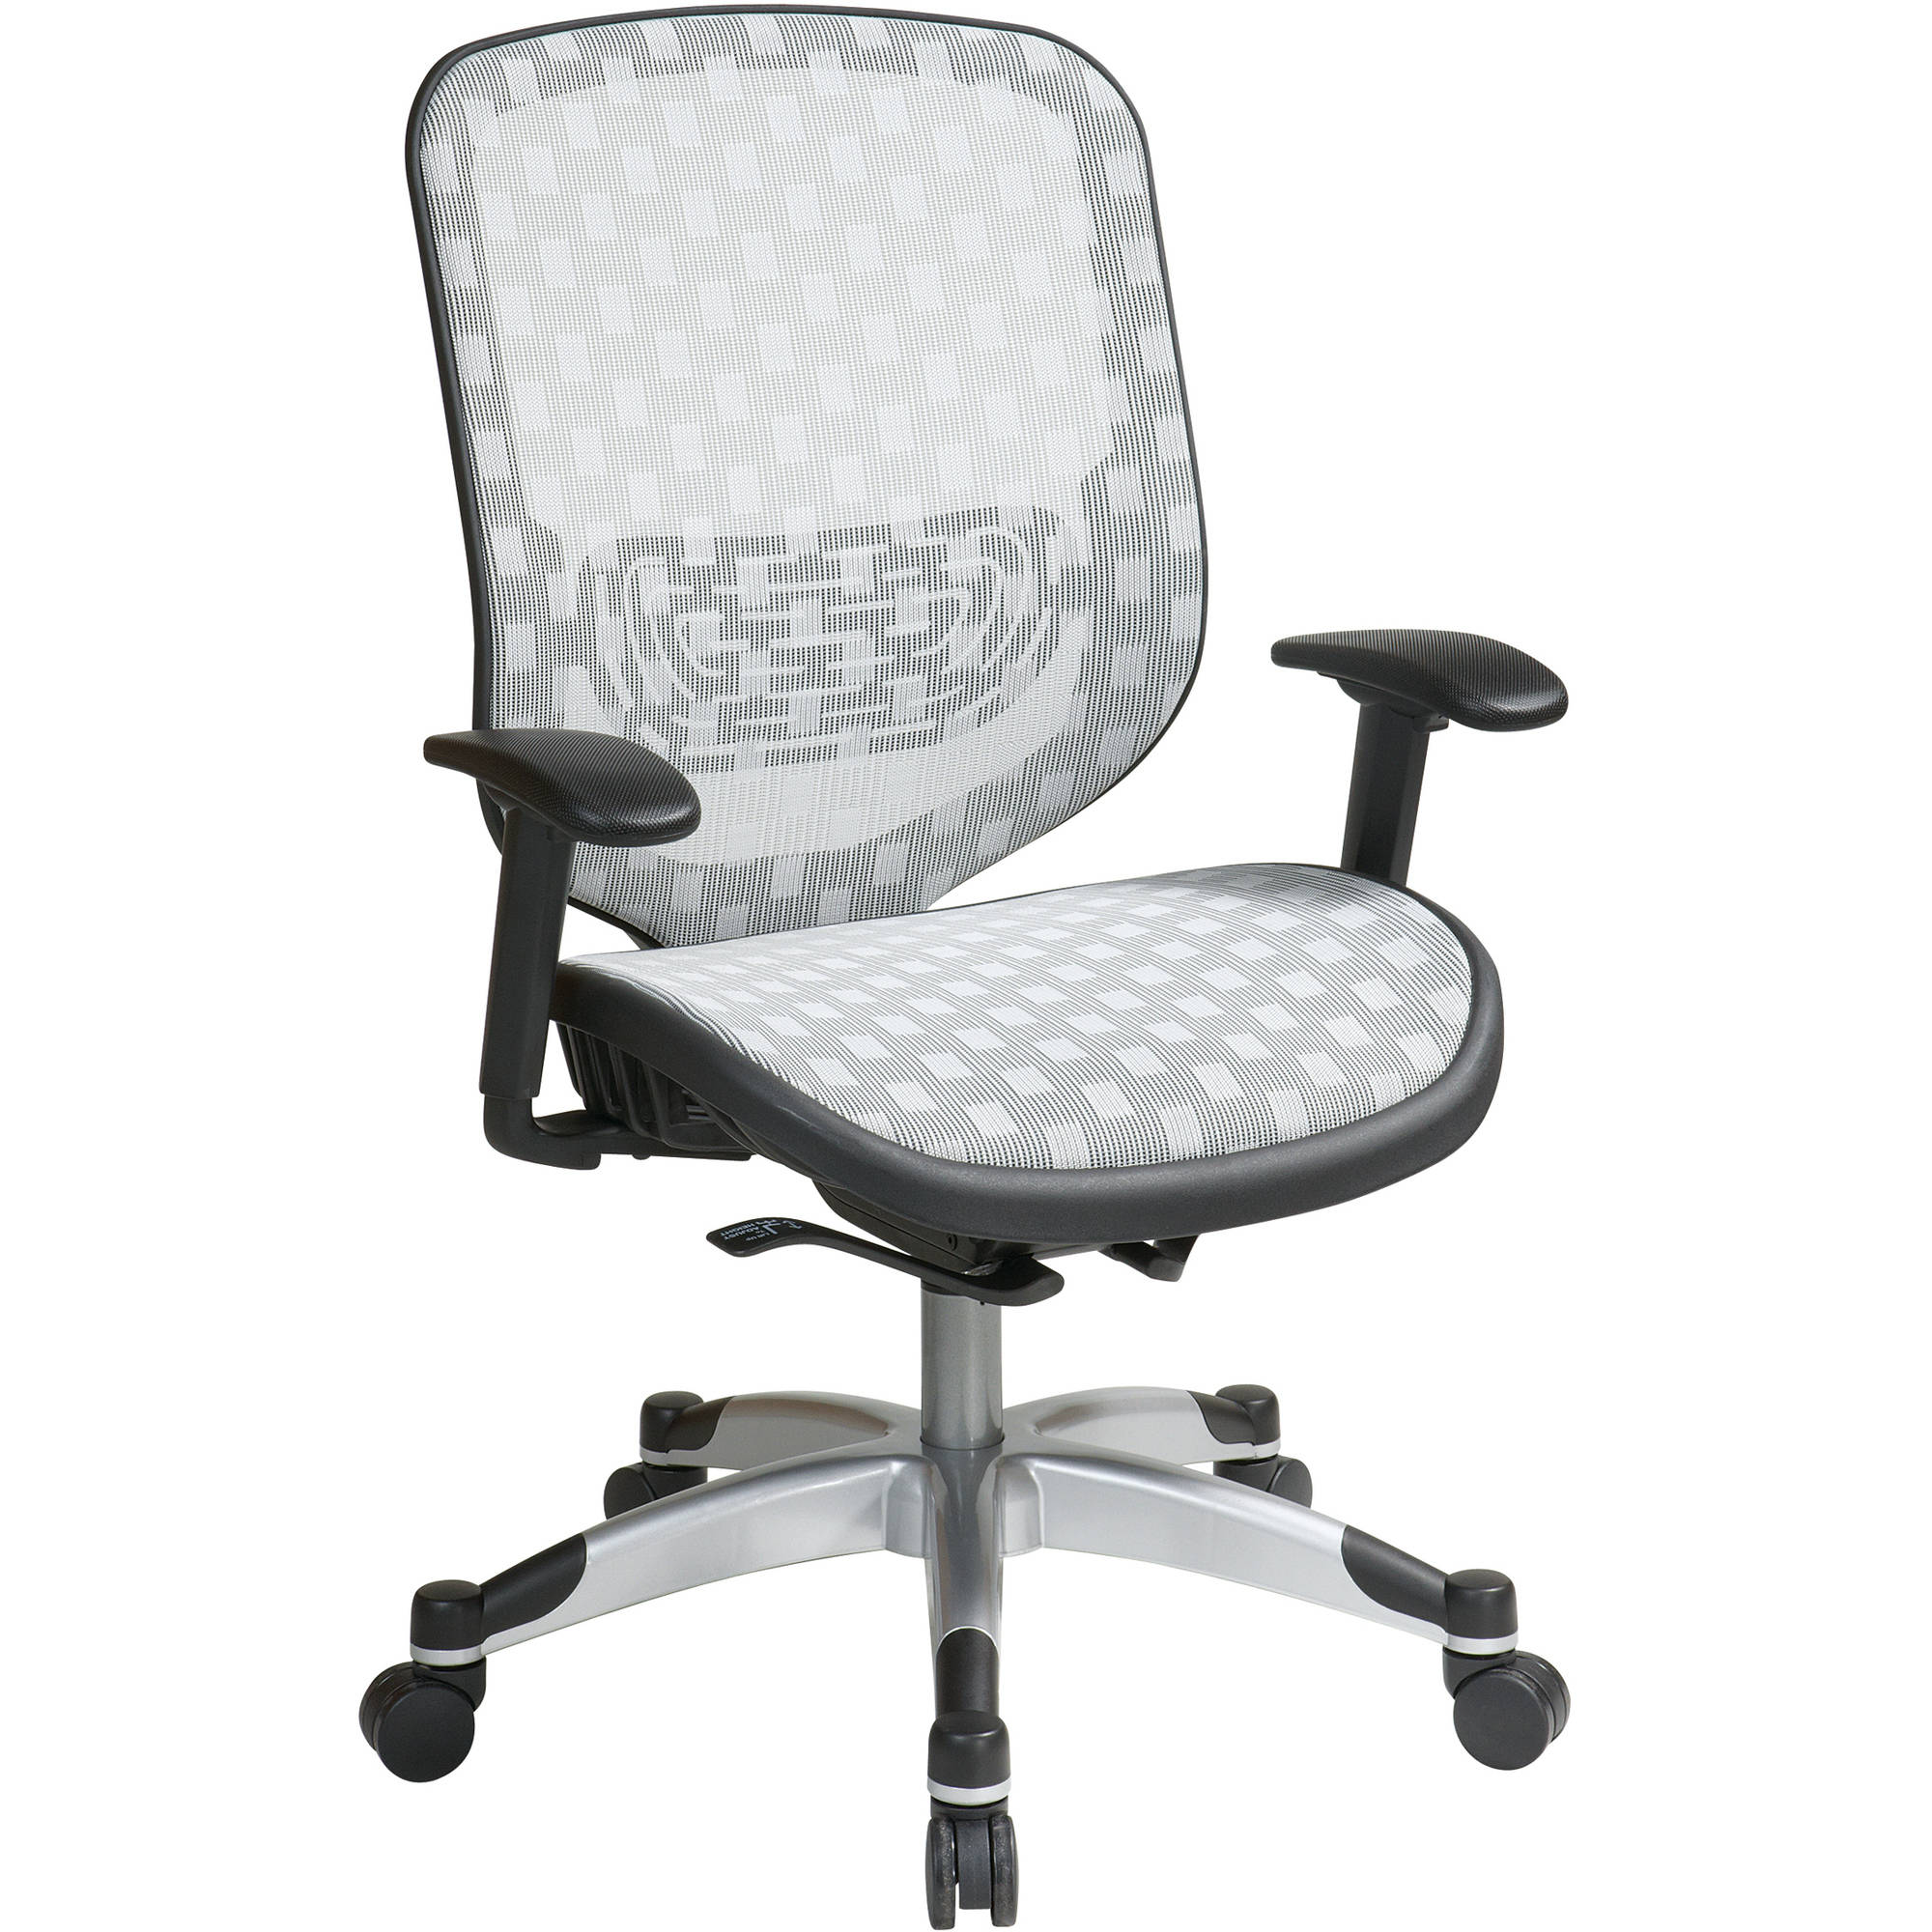 Space Seating White DuraFlex with Flow Through Technology Seat and Back Chair, White